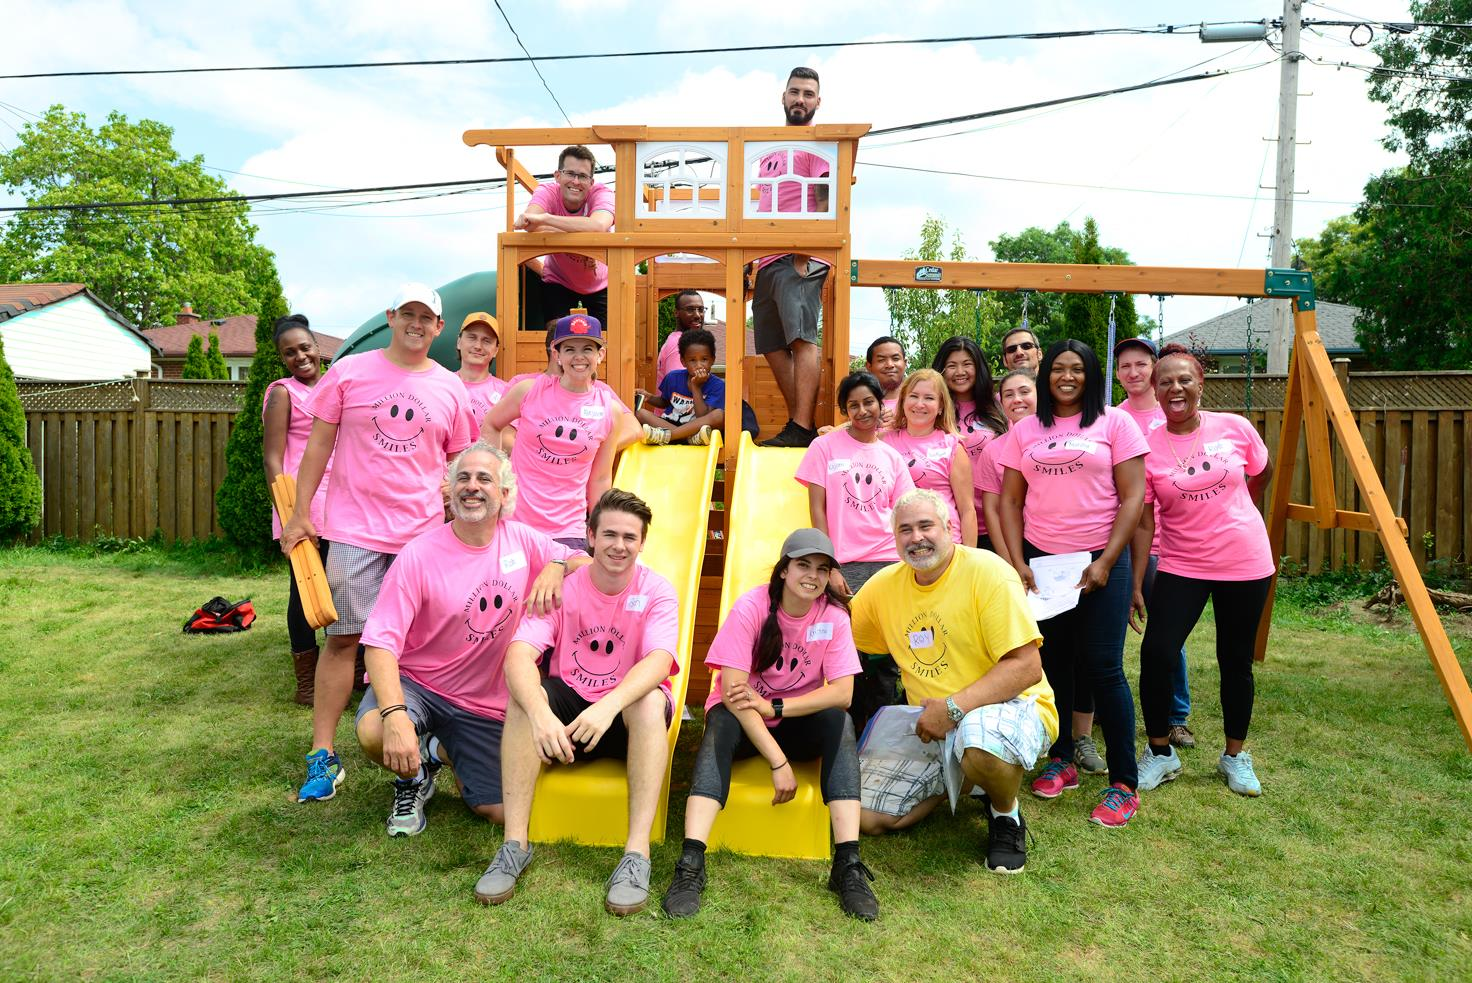 PLUS GROUP of Companies builds new play structure with Million Dollar Smiles Image